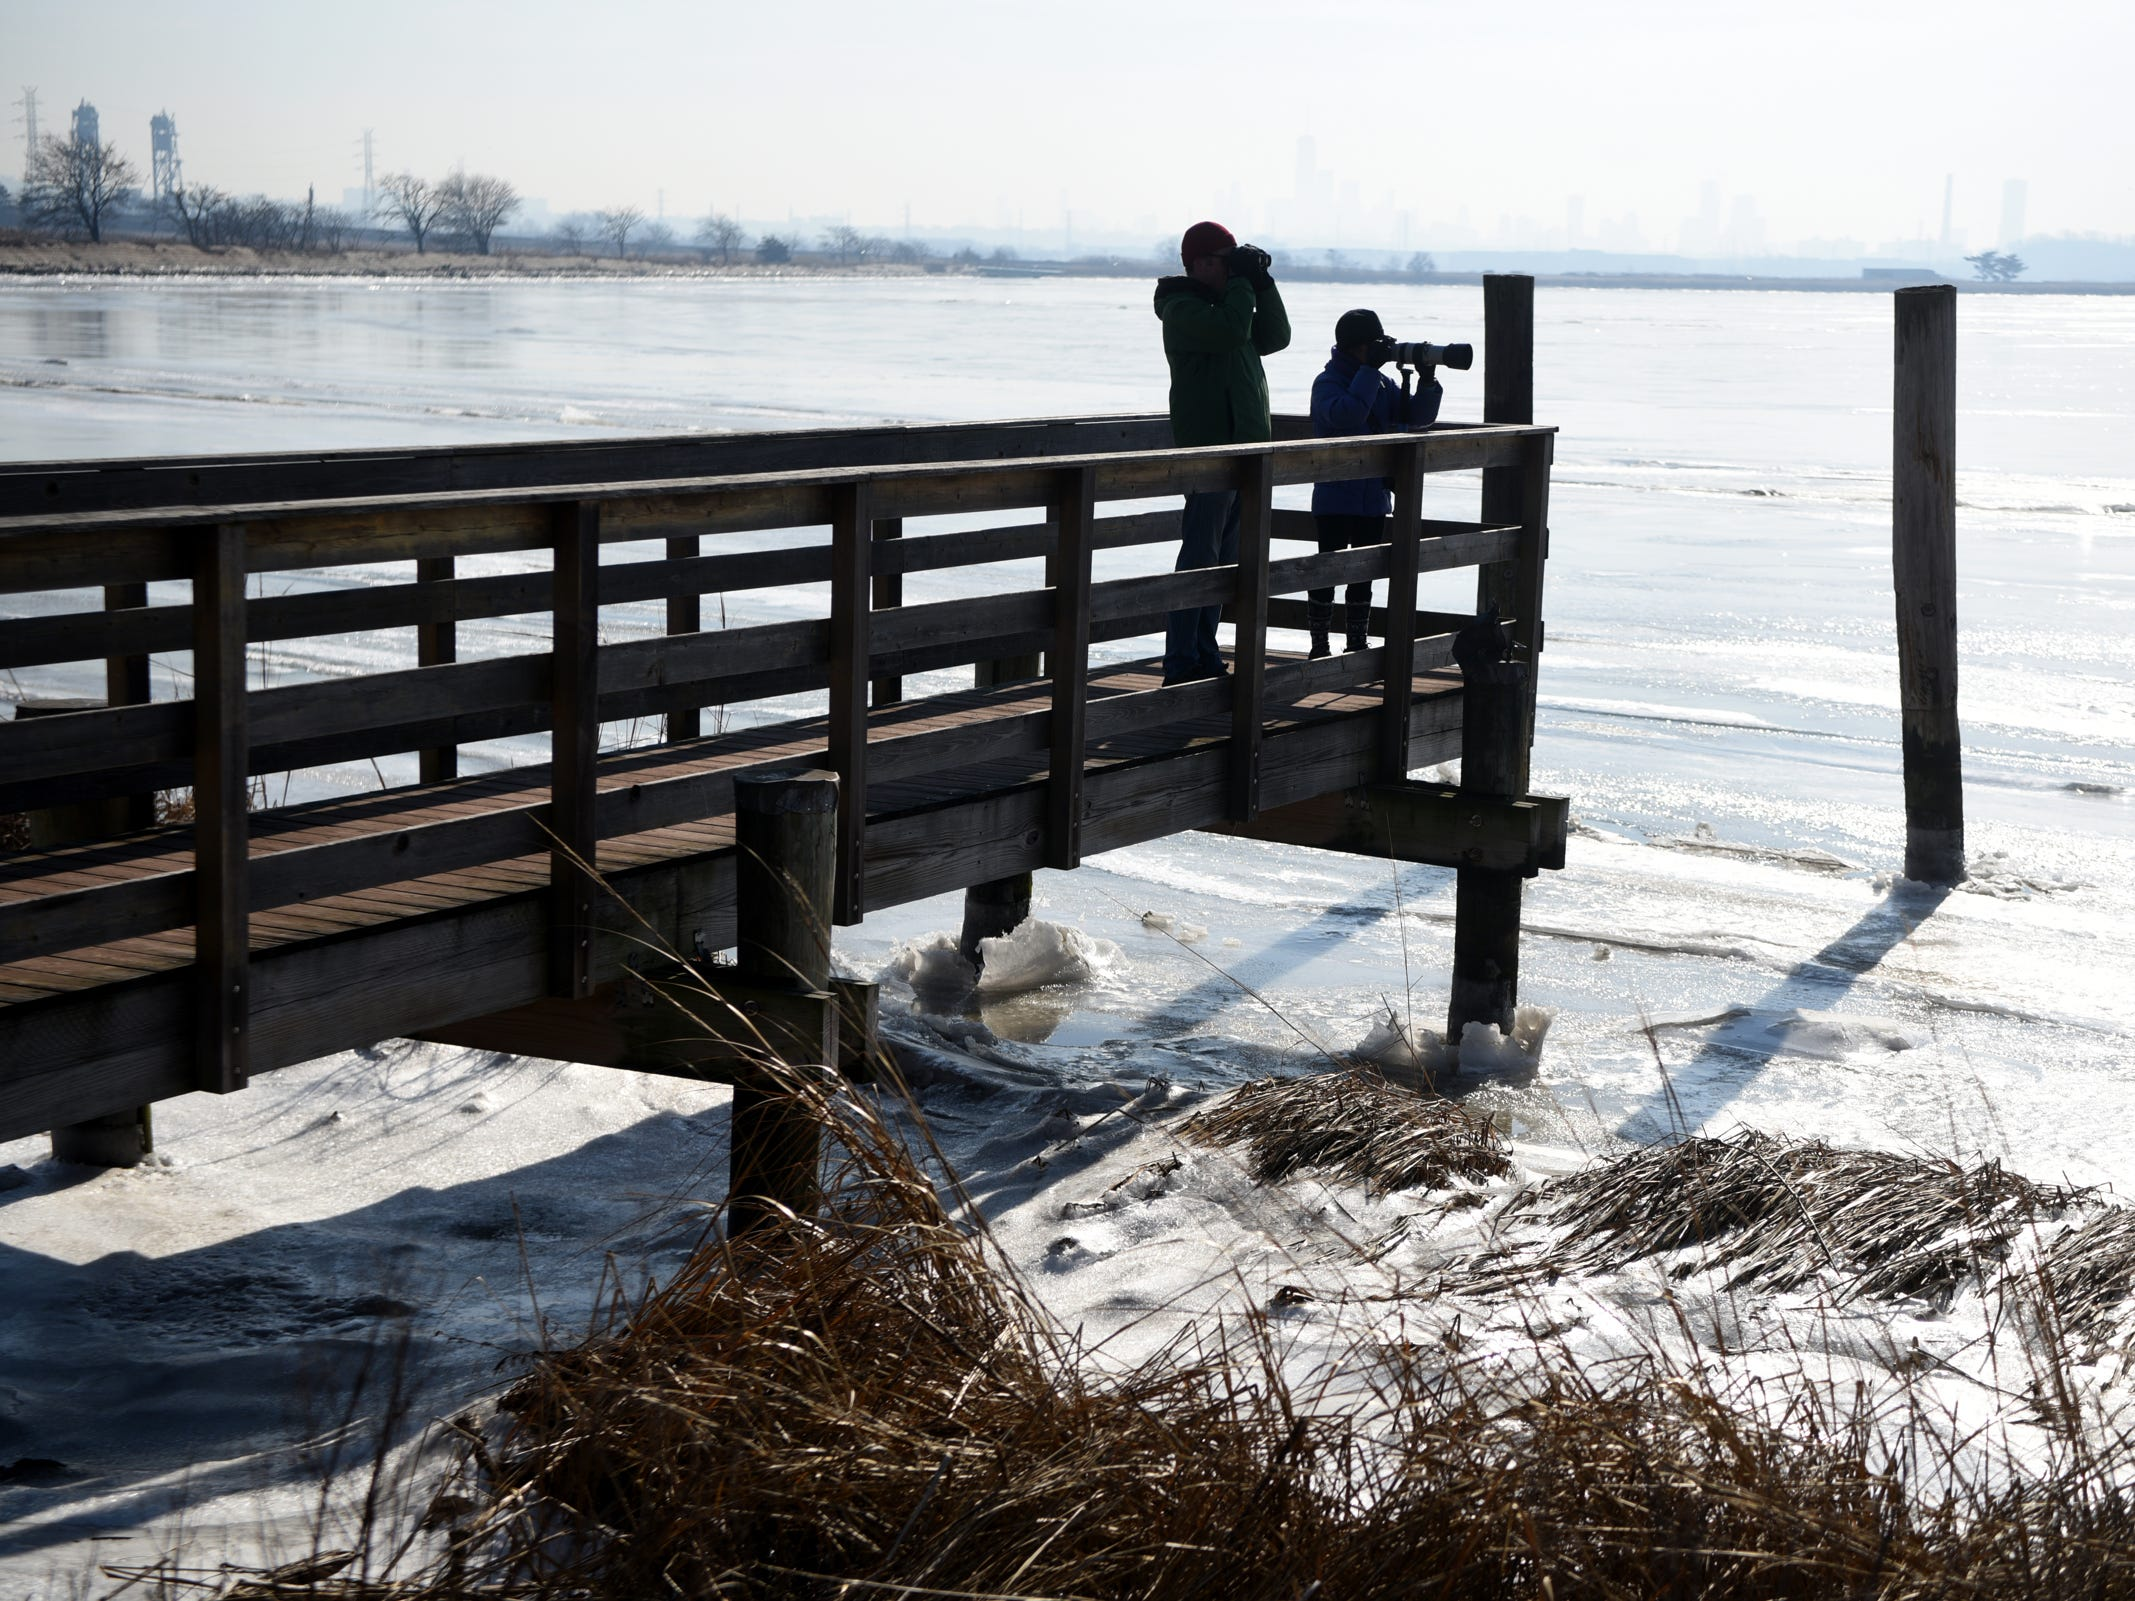 Doug McEachern of Brooklyn, NY uses binoculars to view birds while Mitra Bah of Cliffside Park photographs them during a wintering birds and nature walk hosted by The Bergen County Audubon Society at Dekorte Park in Lyndhurst on Sunday, February 3, 2019.